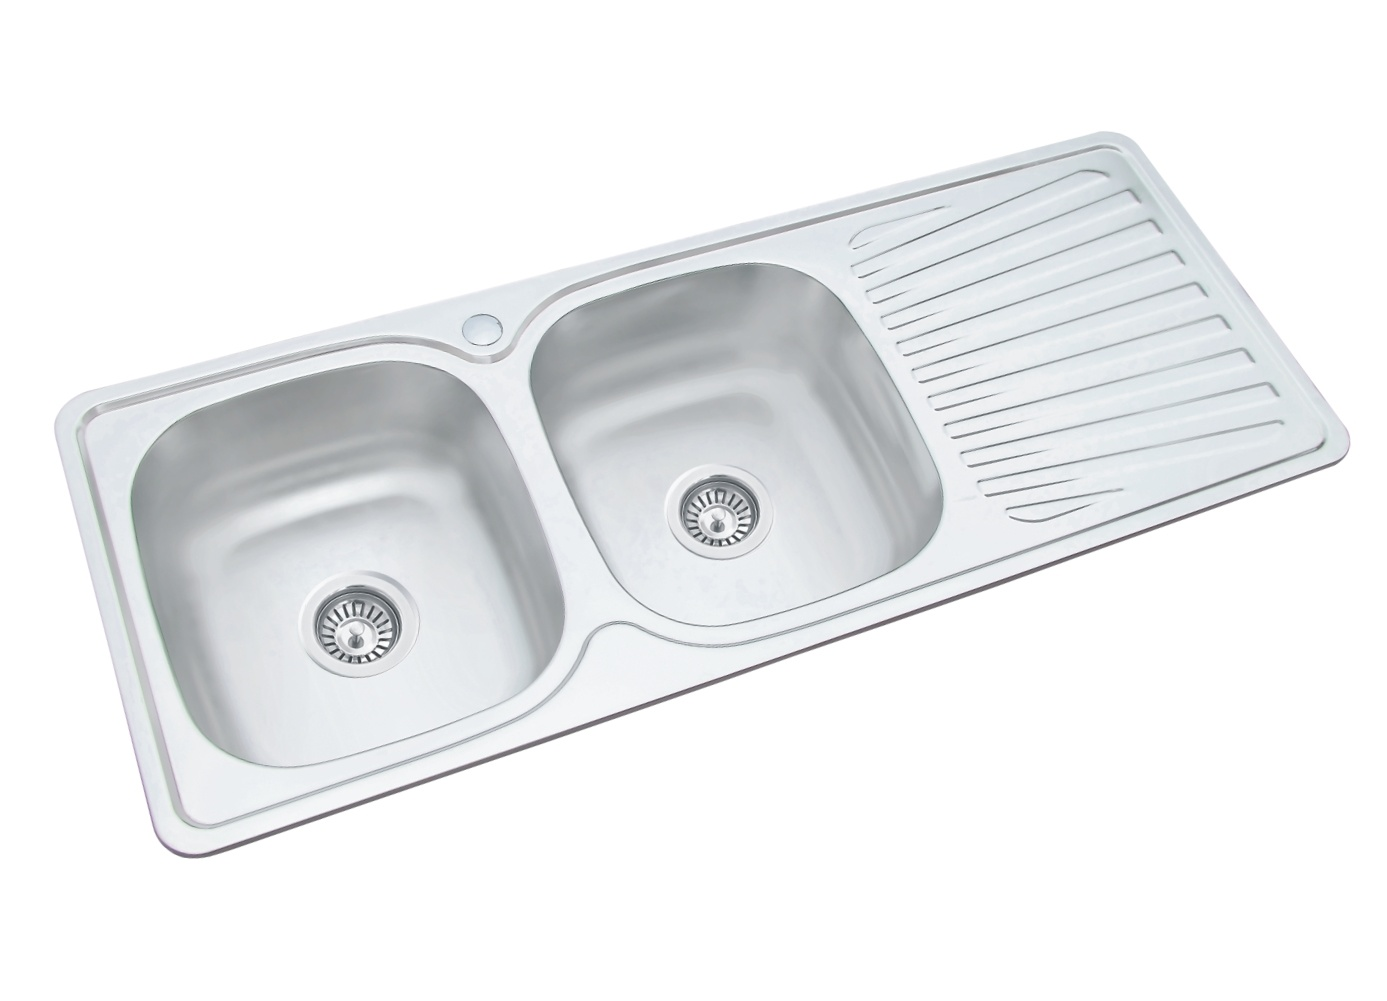 China Swd Xal12048used Commercial Stainless Steel Double Bowl Sink ...